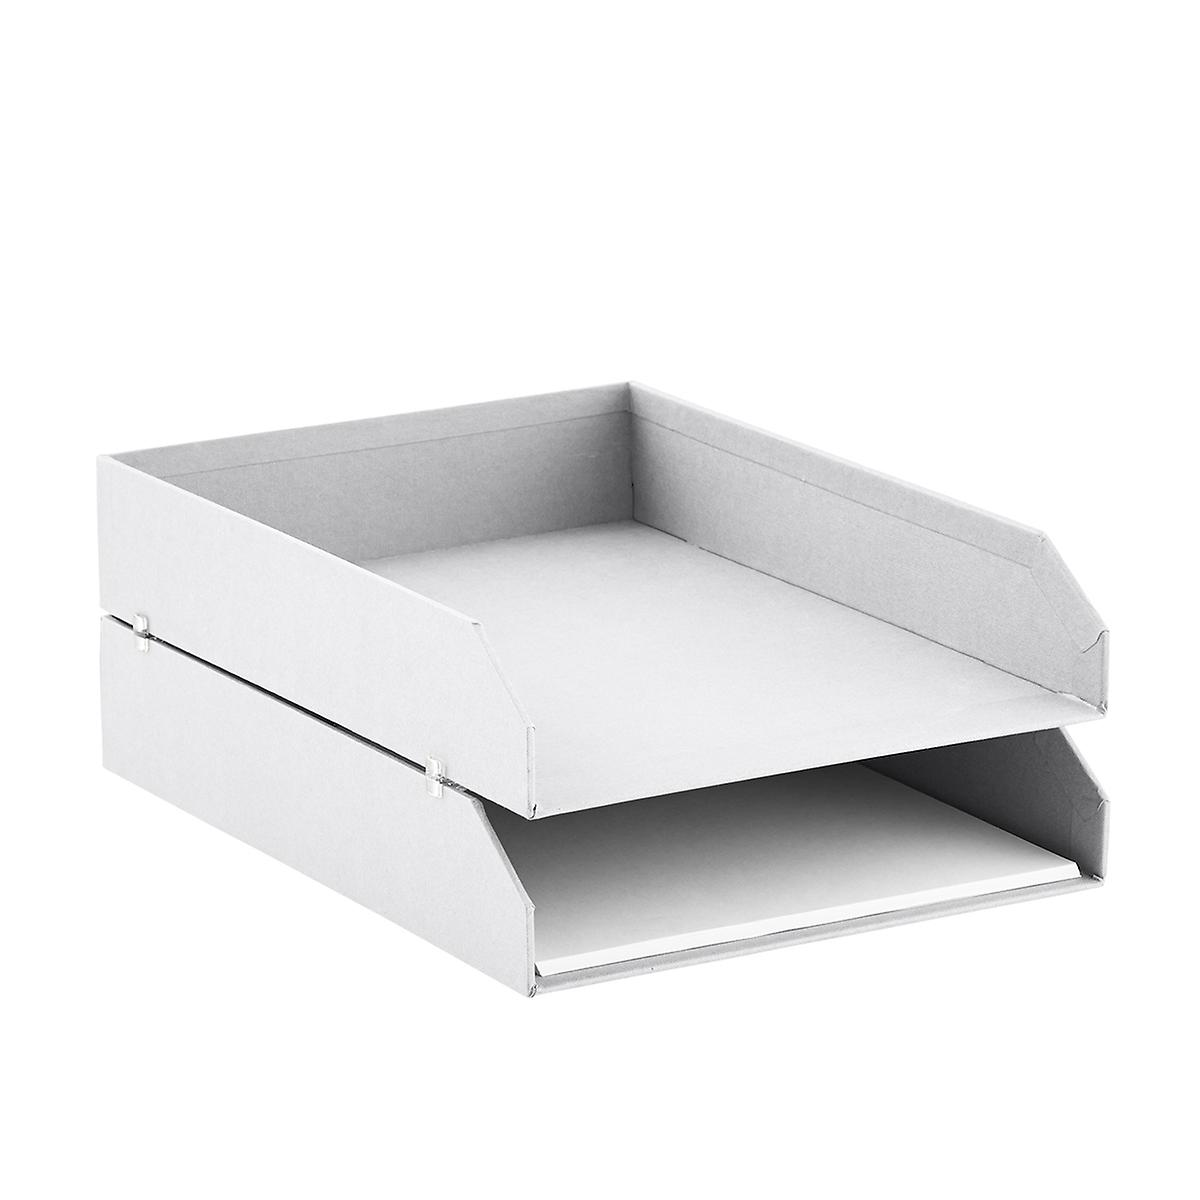 Classic Stockholm Stacking Letter Tray